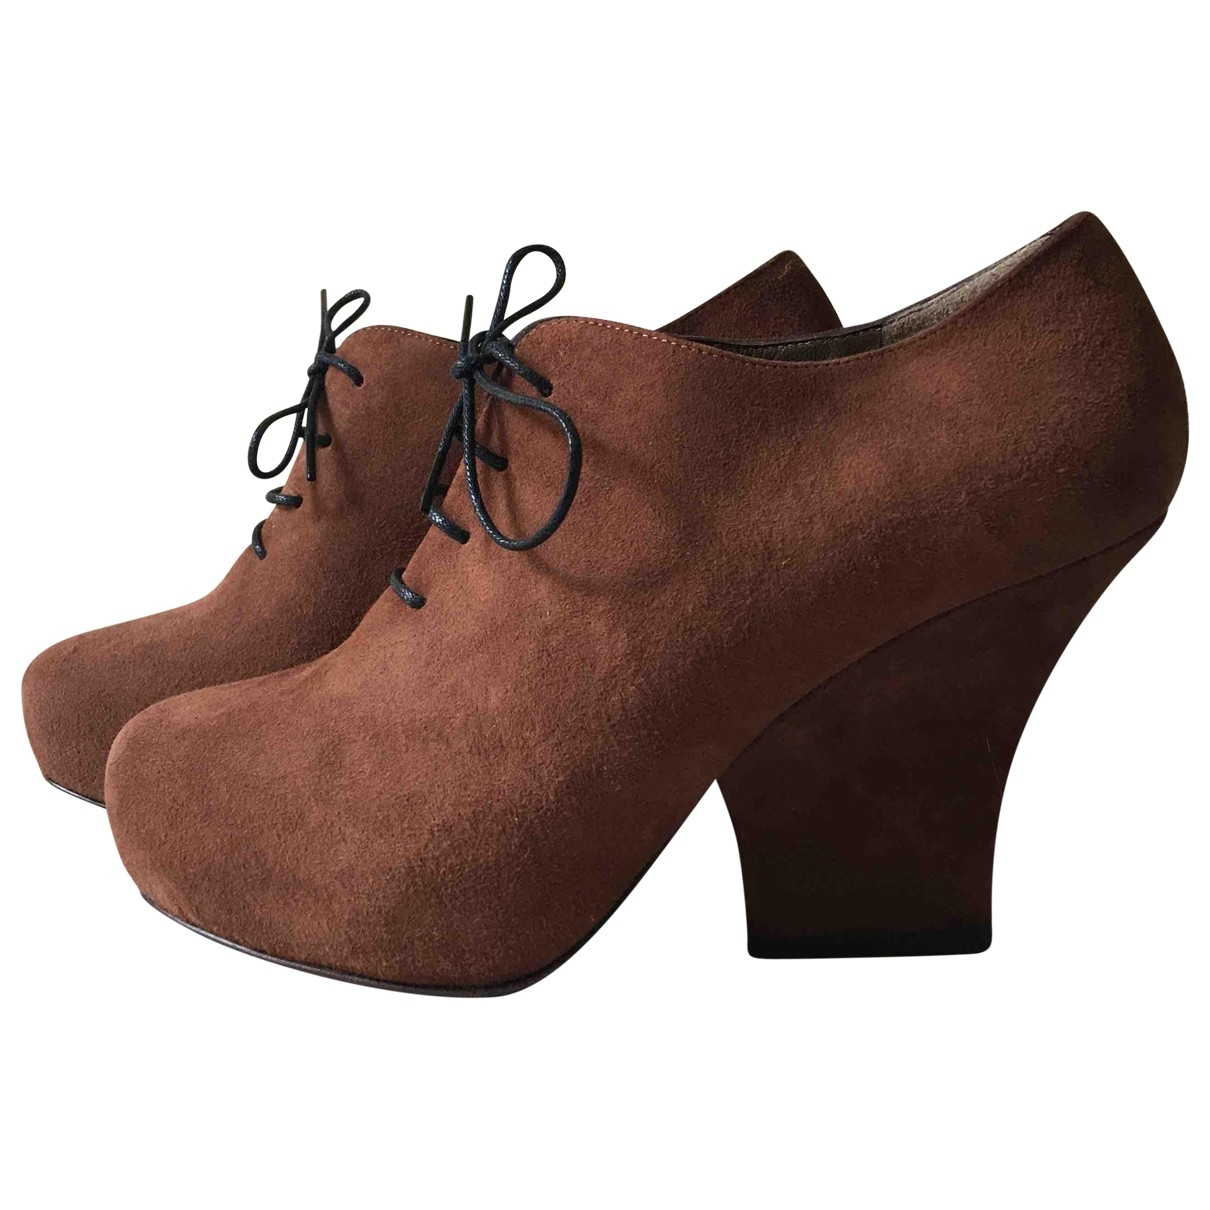 Marni \N Brown Suede Heels for Women 36 EU